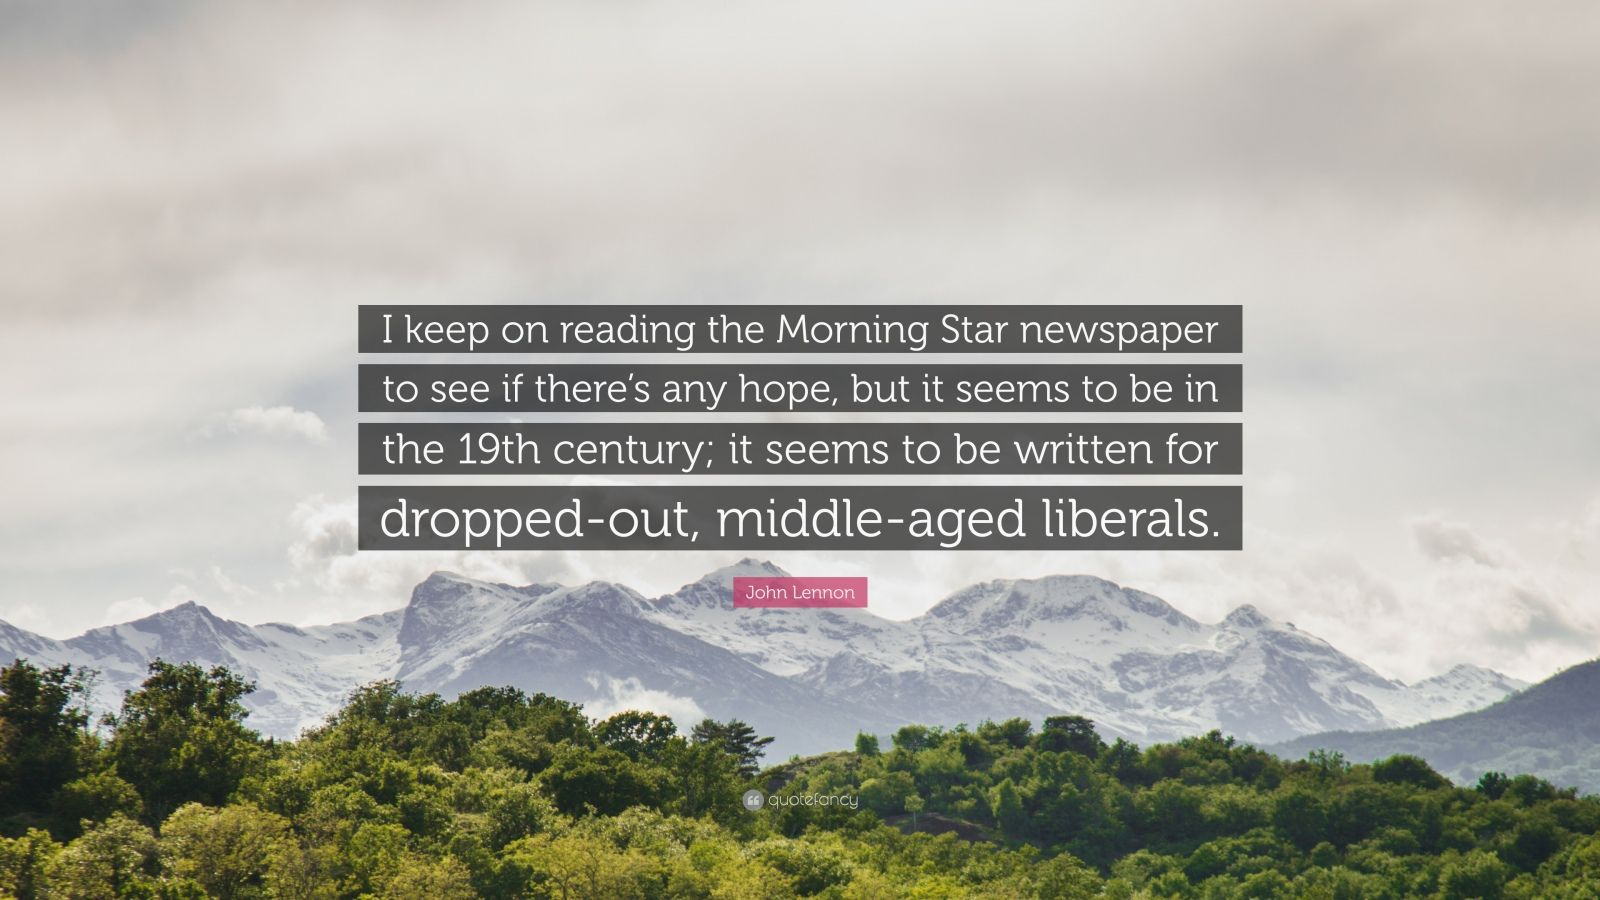 """John Lennon Quote: """"I keep on reading the Morning Star newspaper to see if there's any hope, but it seems to be in the 19th century; it seems to be written for dropped-out, middle-aged liberals."""""""